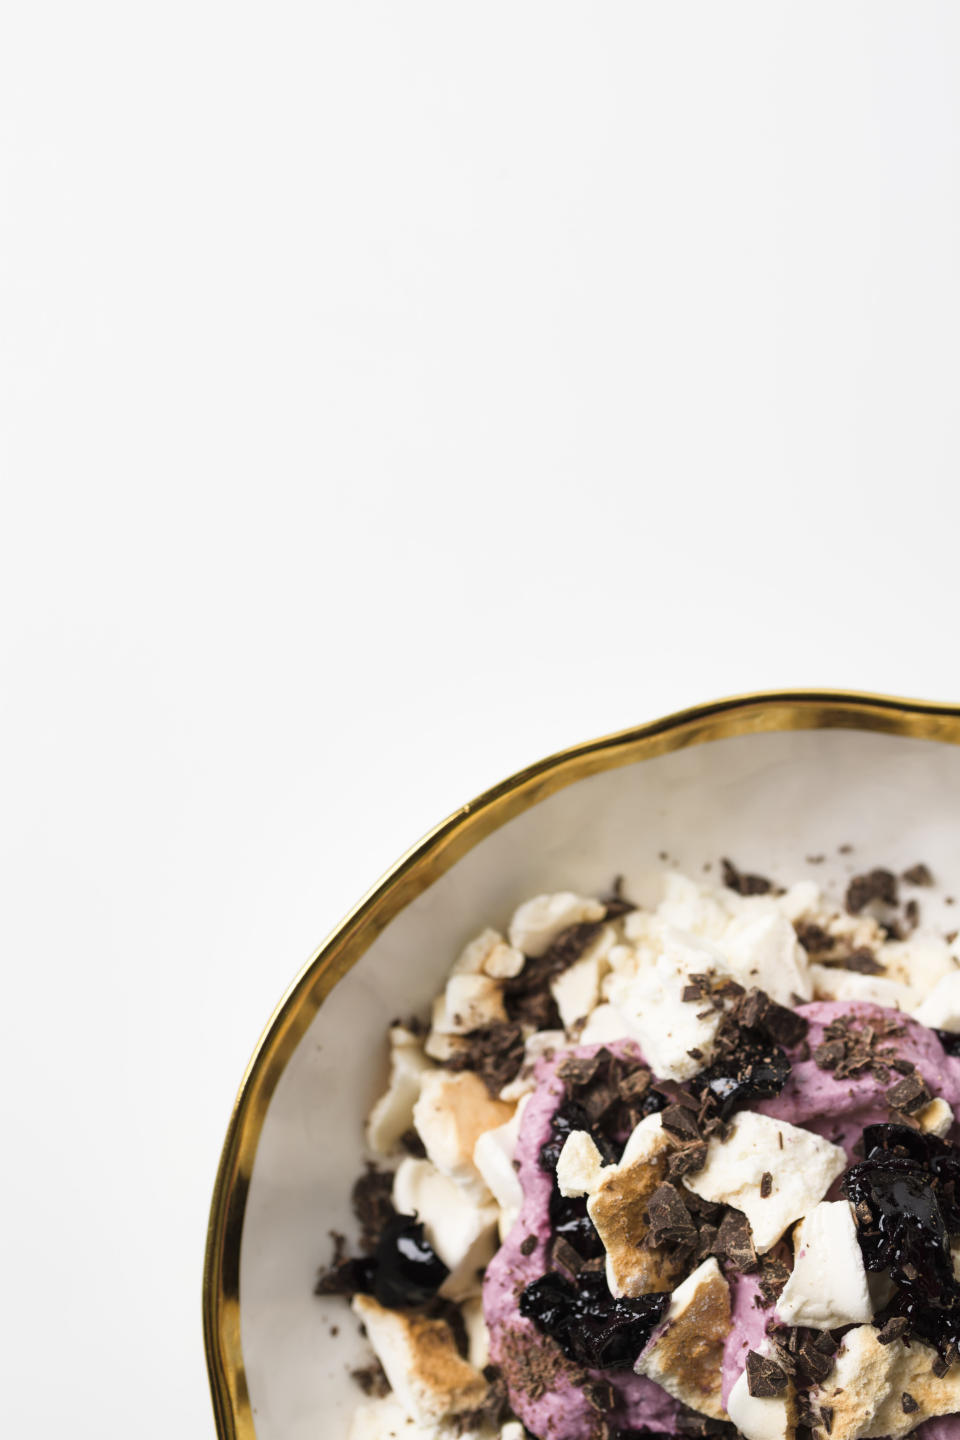 This image released by Milk Street shows a recipe for Eton Mess with Chocolate and Cherries. (Milk Street via AP)